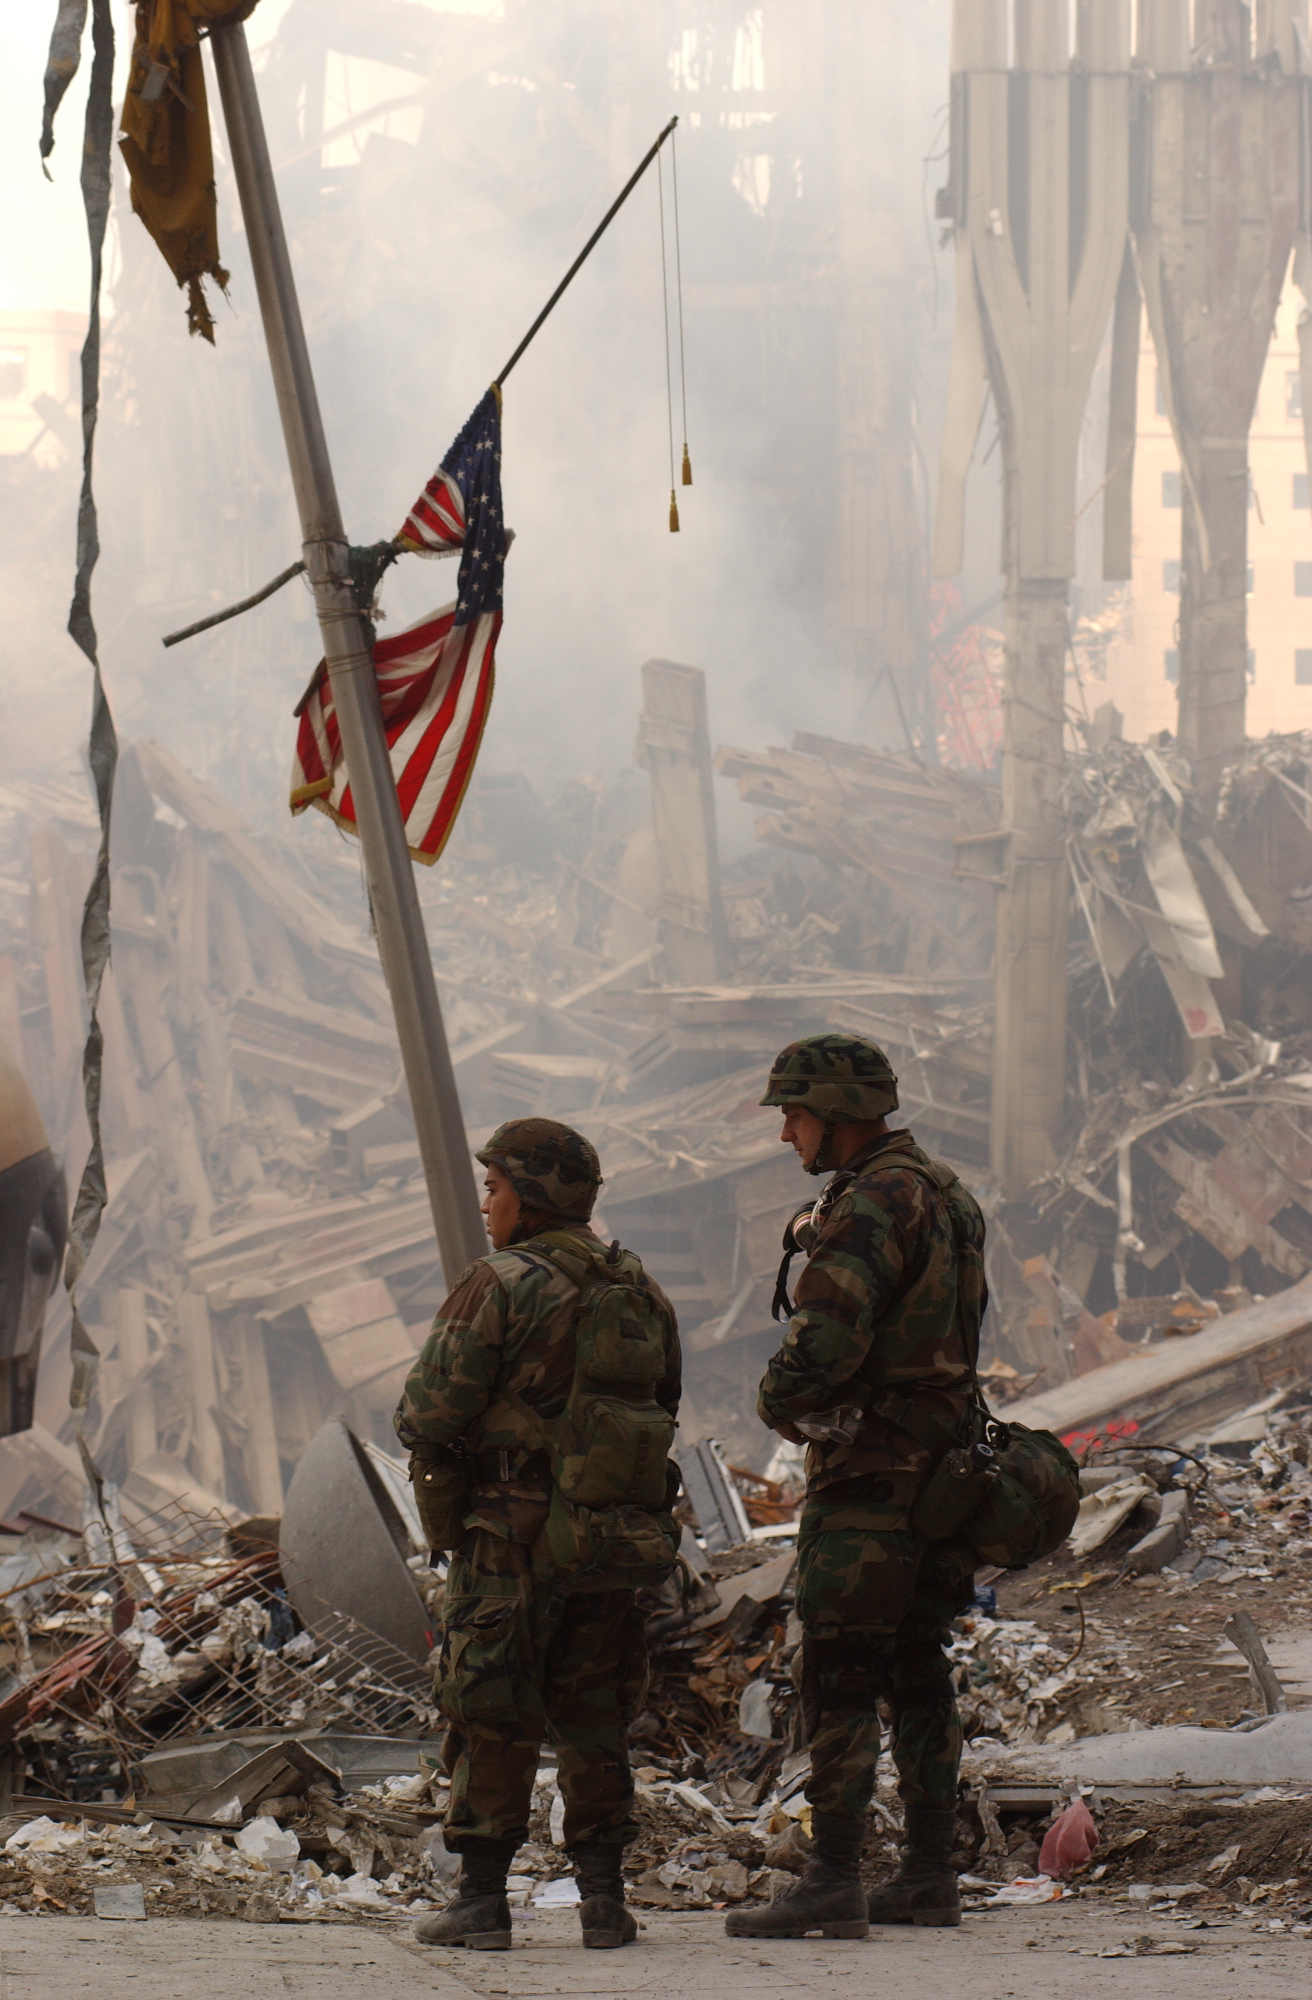 soldiers standing by a fallen flag